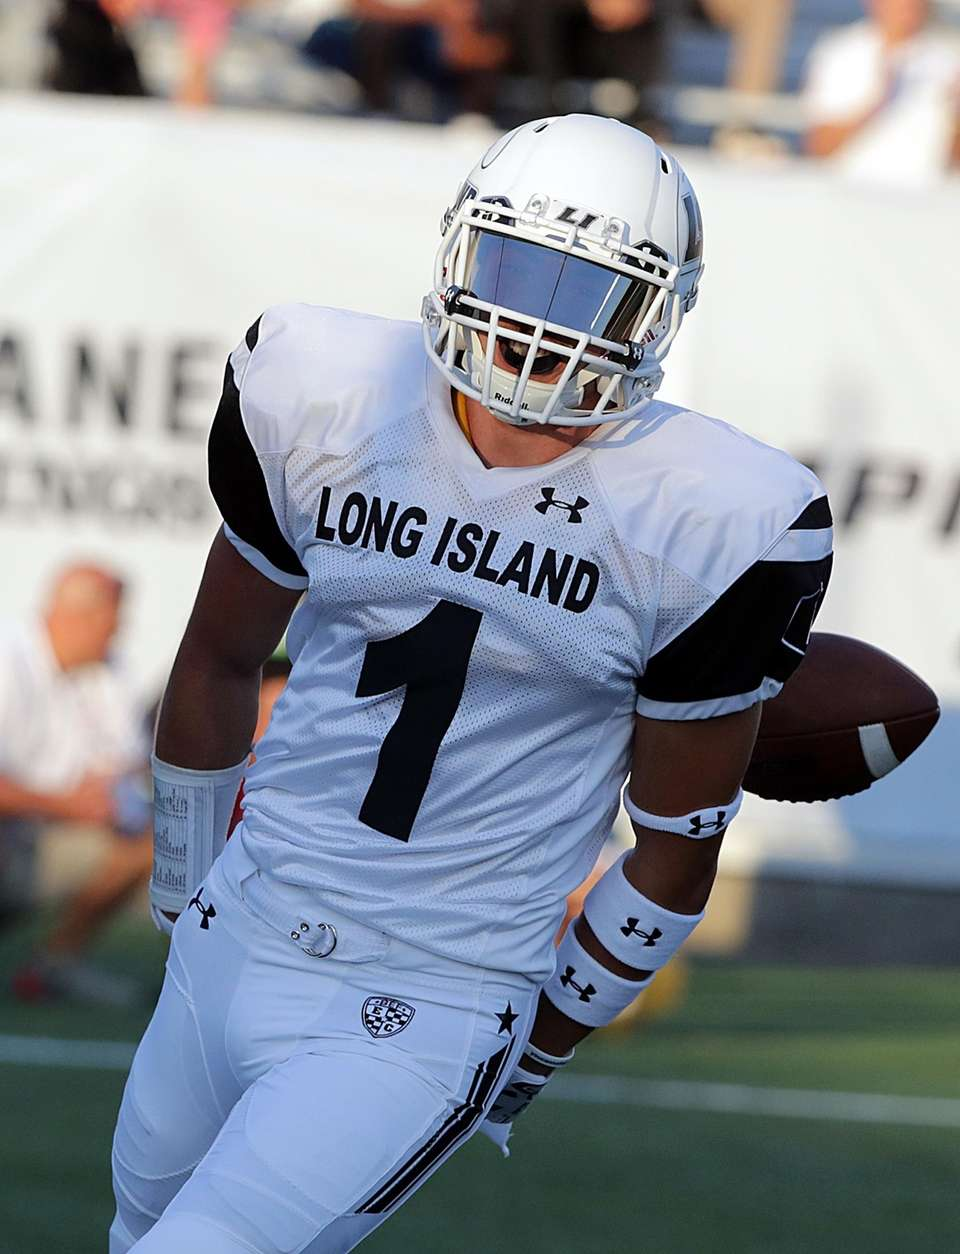 Long Island wide receiver John Corpac reacts after